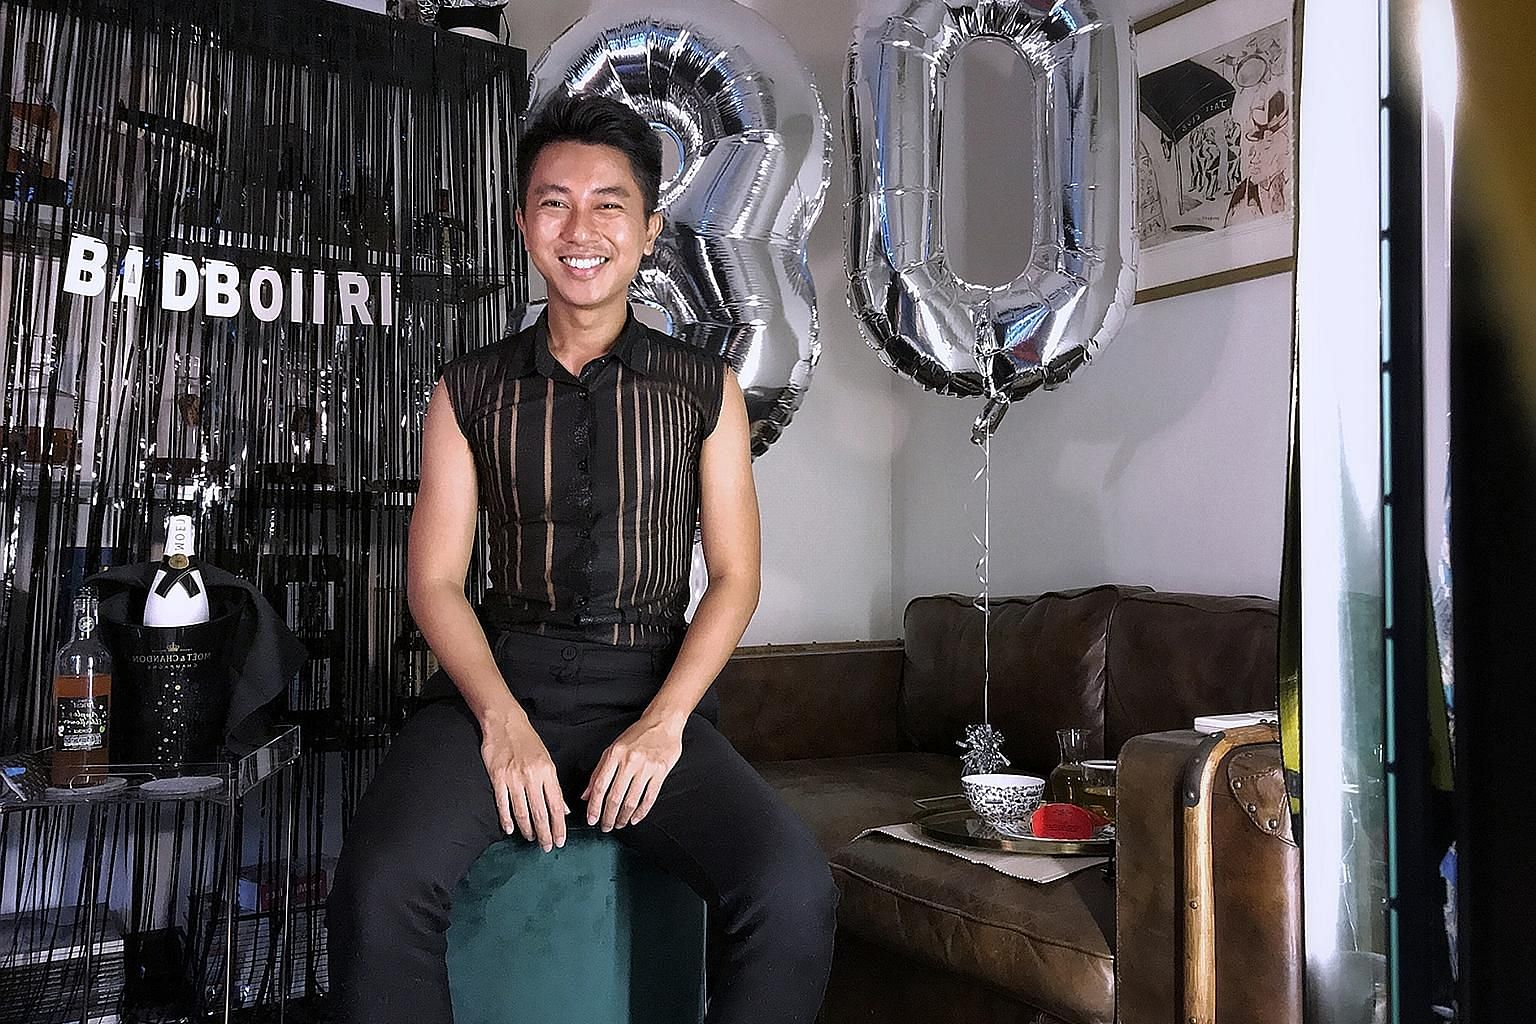 Graphic designer Ridaudin Abdul Rasid planned a virtual party with a few close friends, got decorations, baked his own cake and secretly ordered food to be delivered to them.